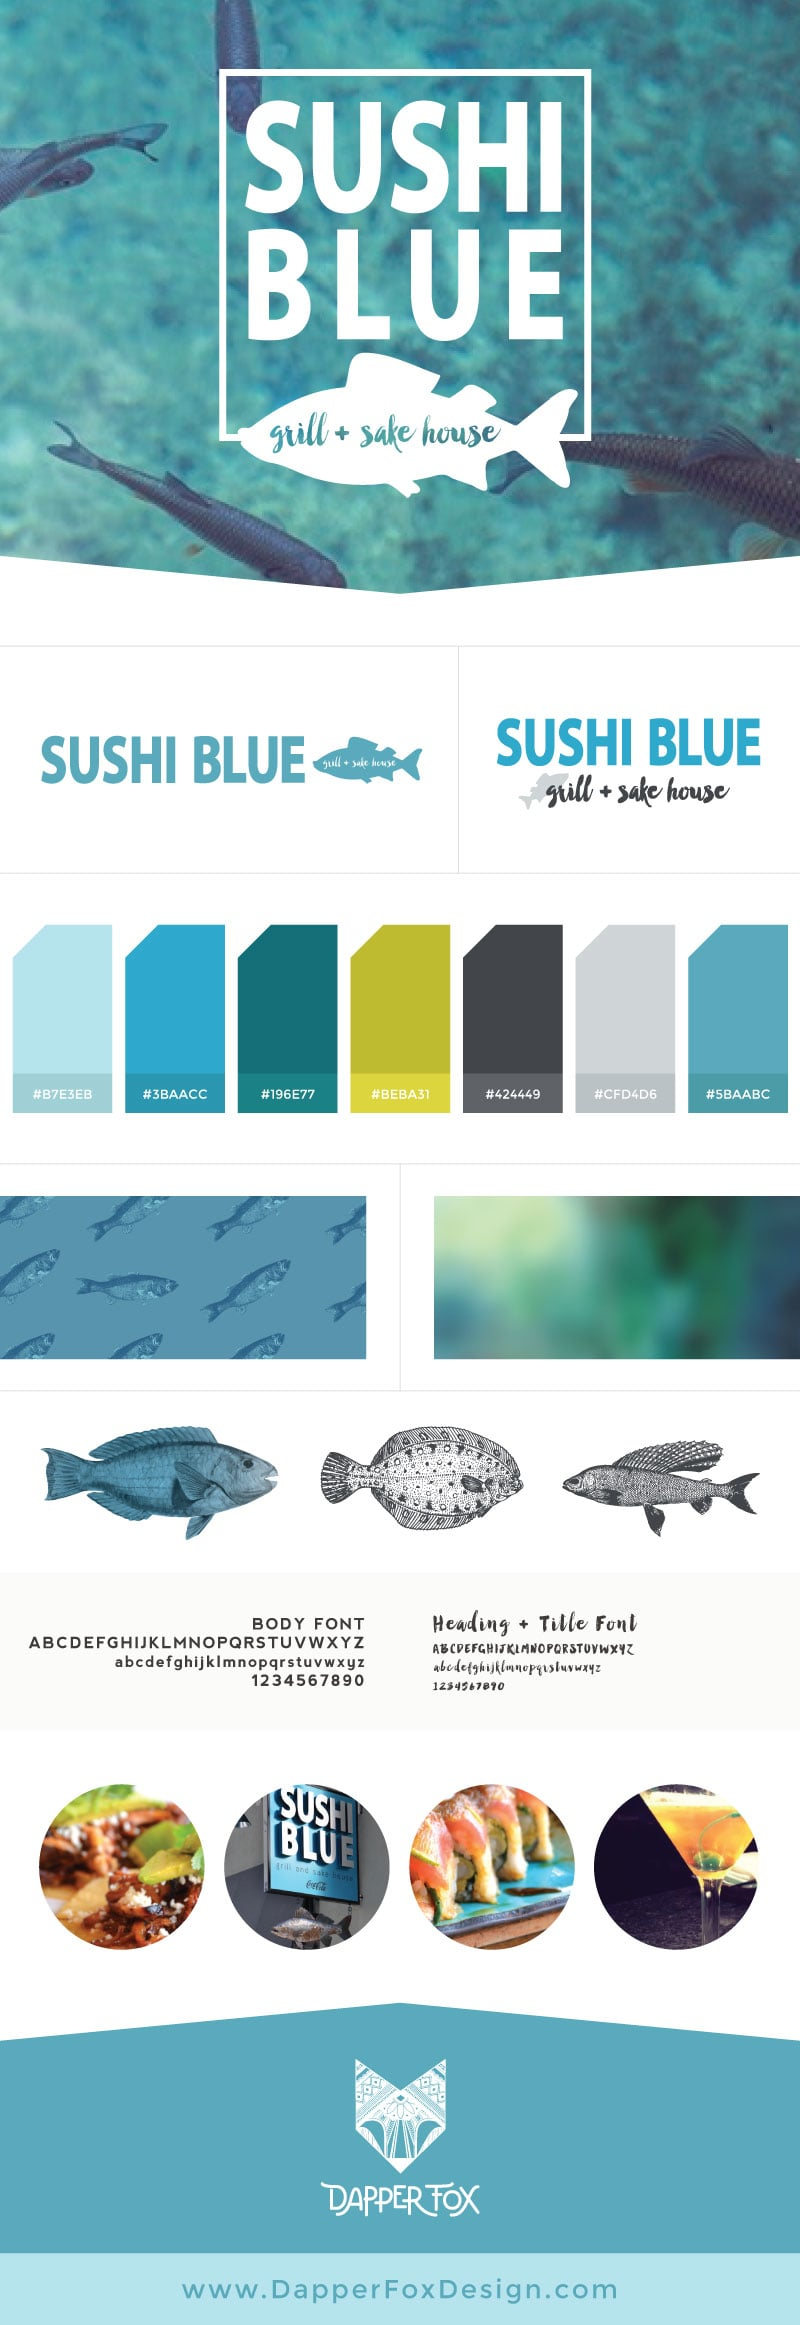 Brand Board for Sushi Blue in Park City by Dapper Fox Design - Blue, Green, Handwriting, Clean, Unique Brand and Logo